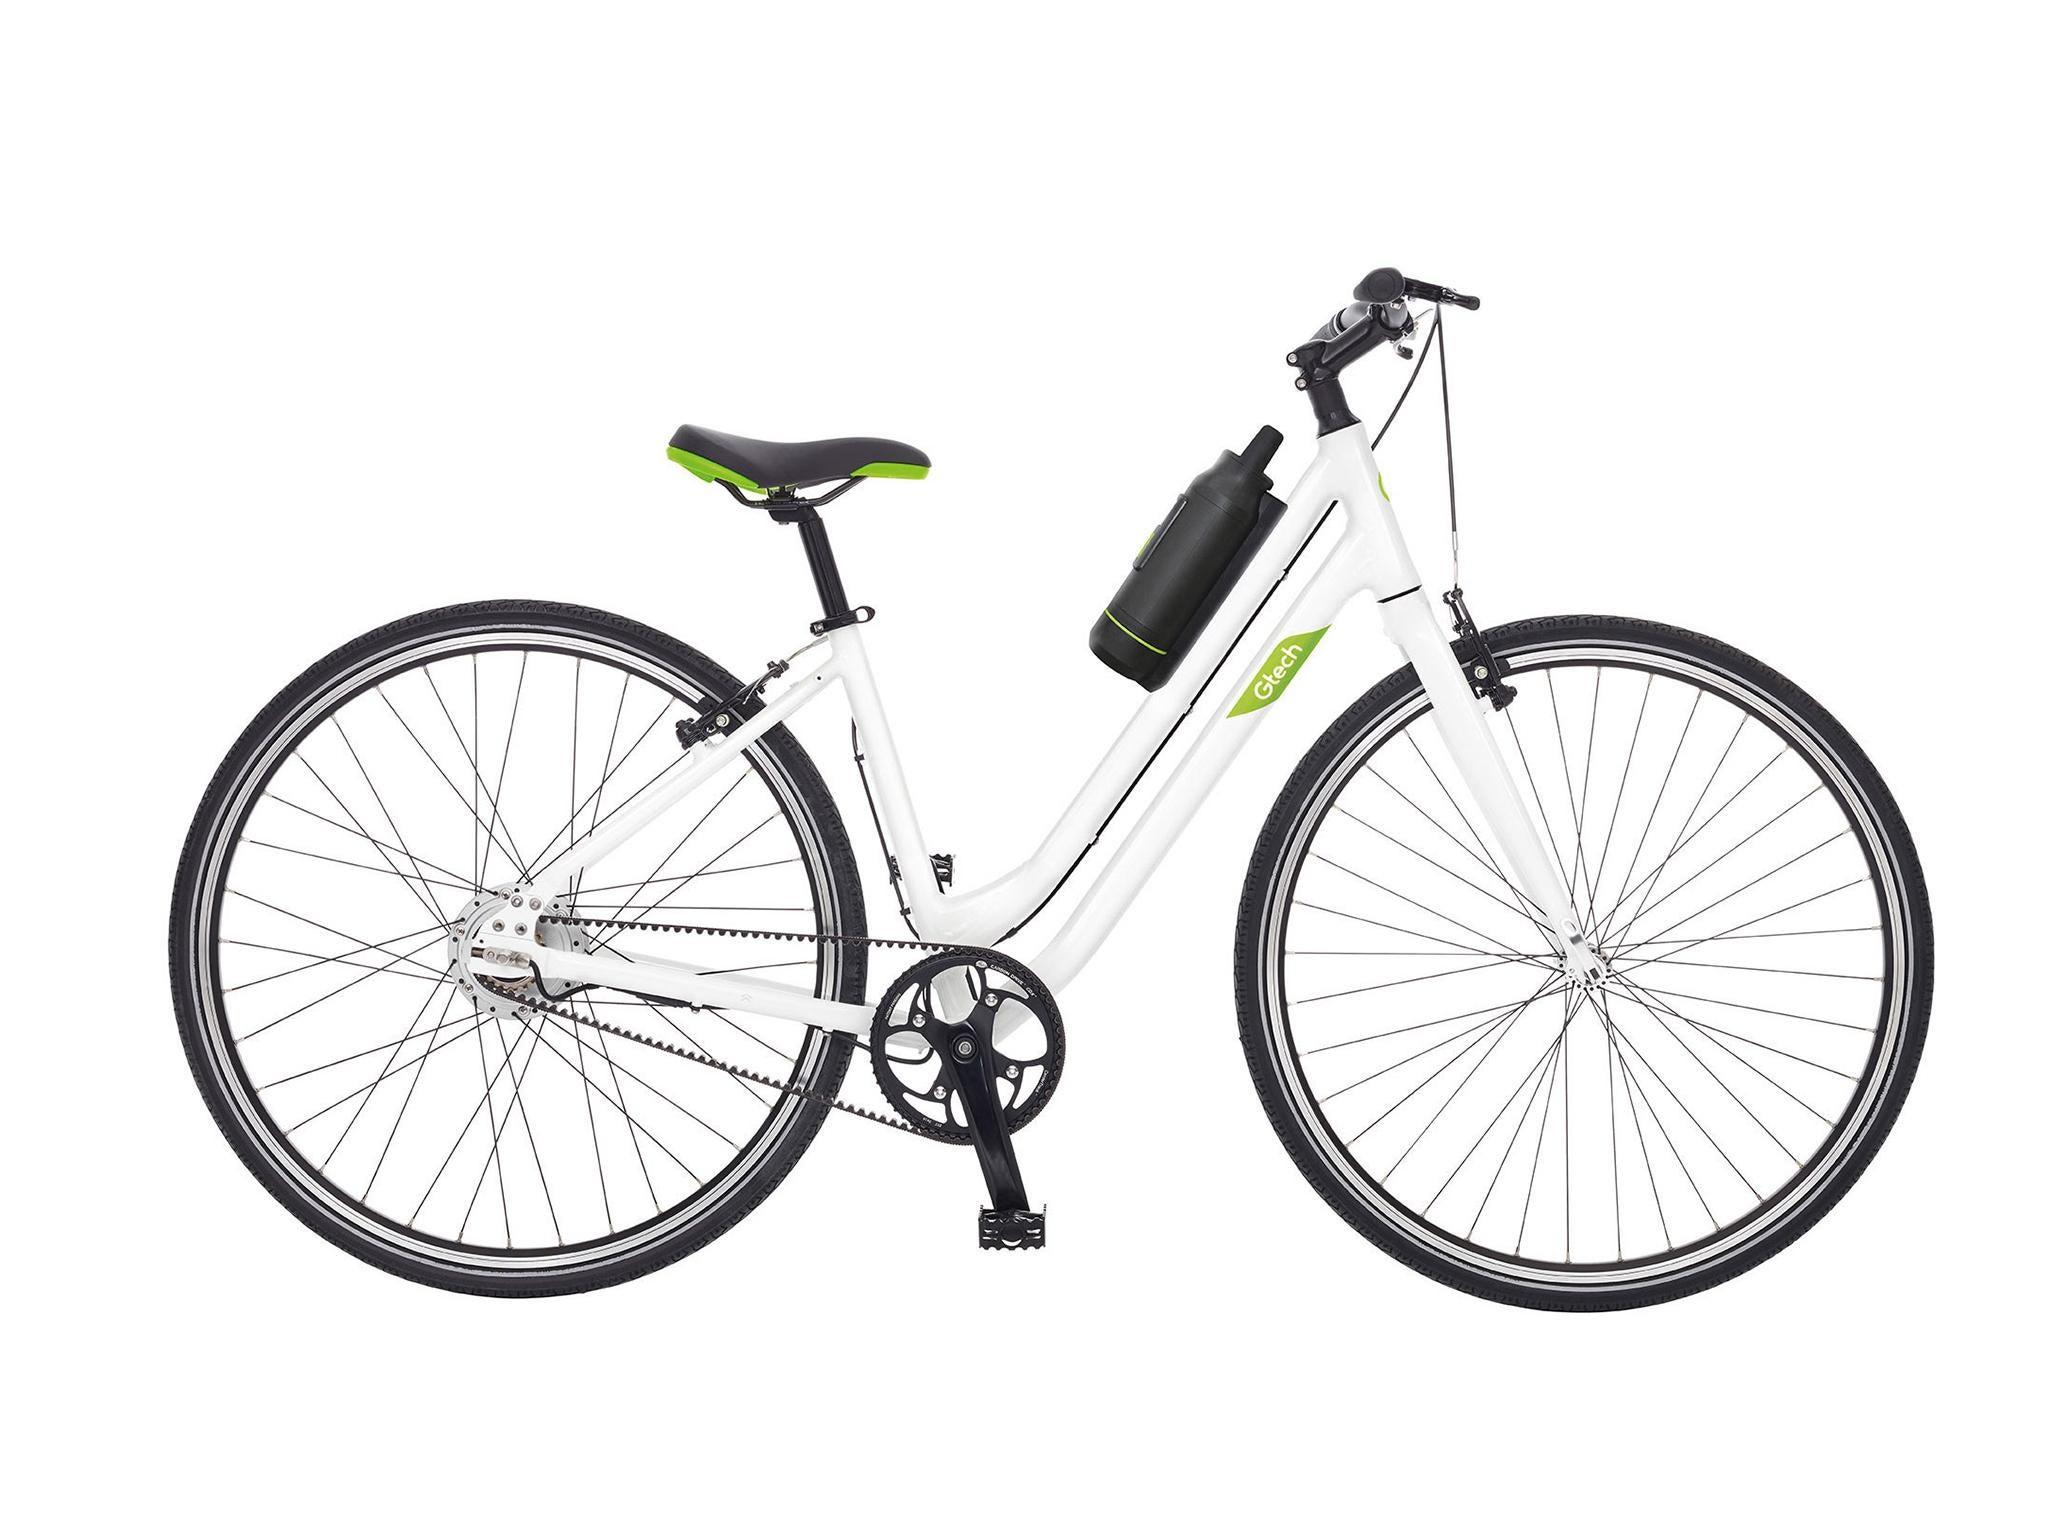 Best electric bikes that are compact, easily rechargeable and sleek